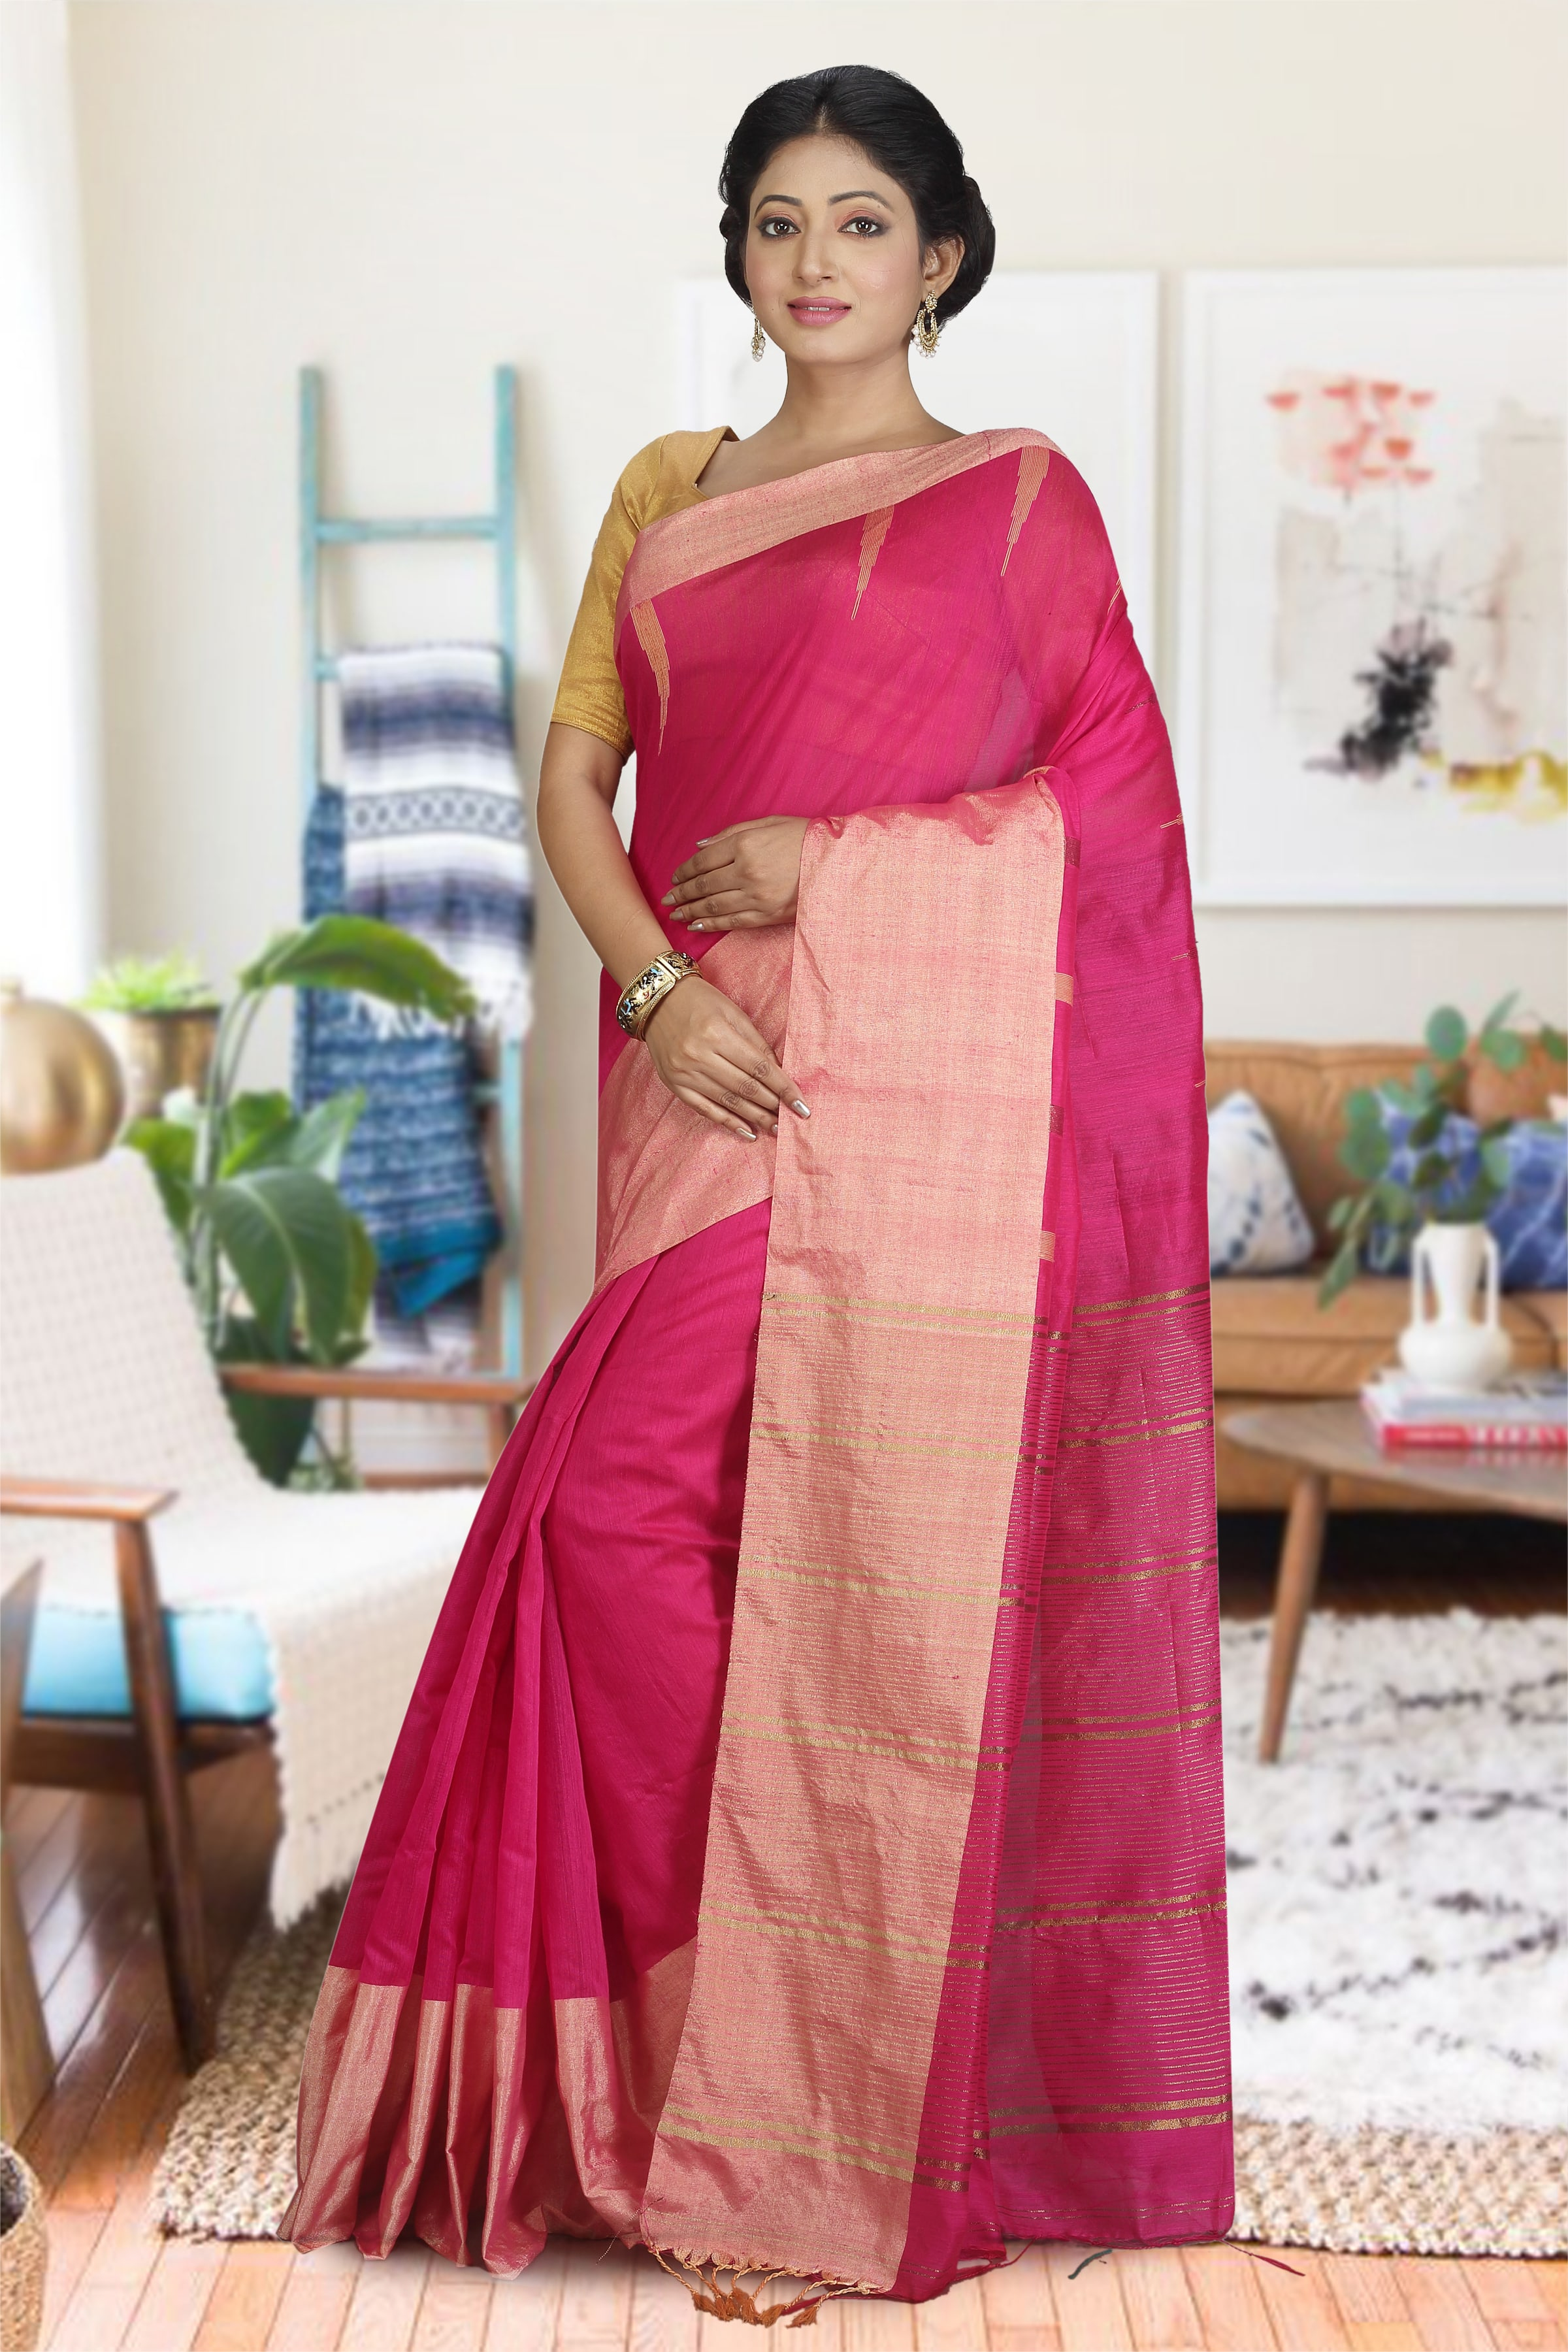 Rani and Beige Hand Woven Blended Cotton Saree